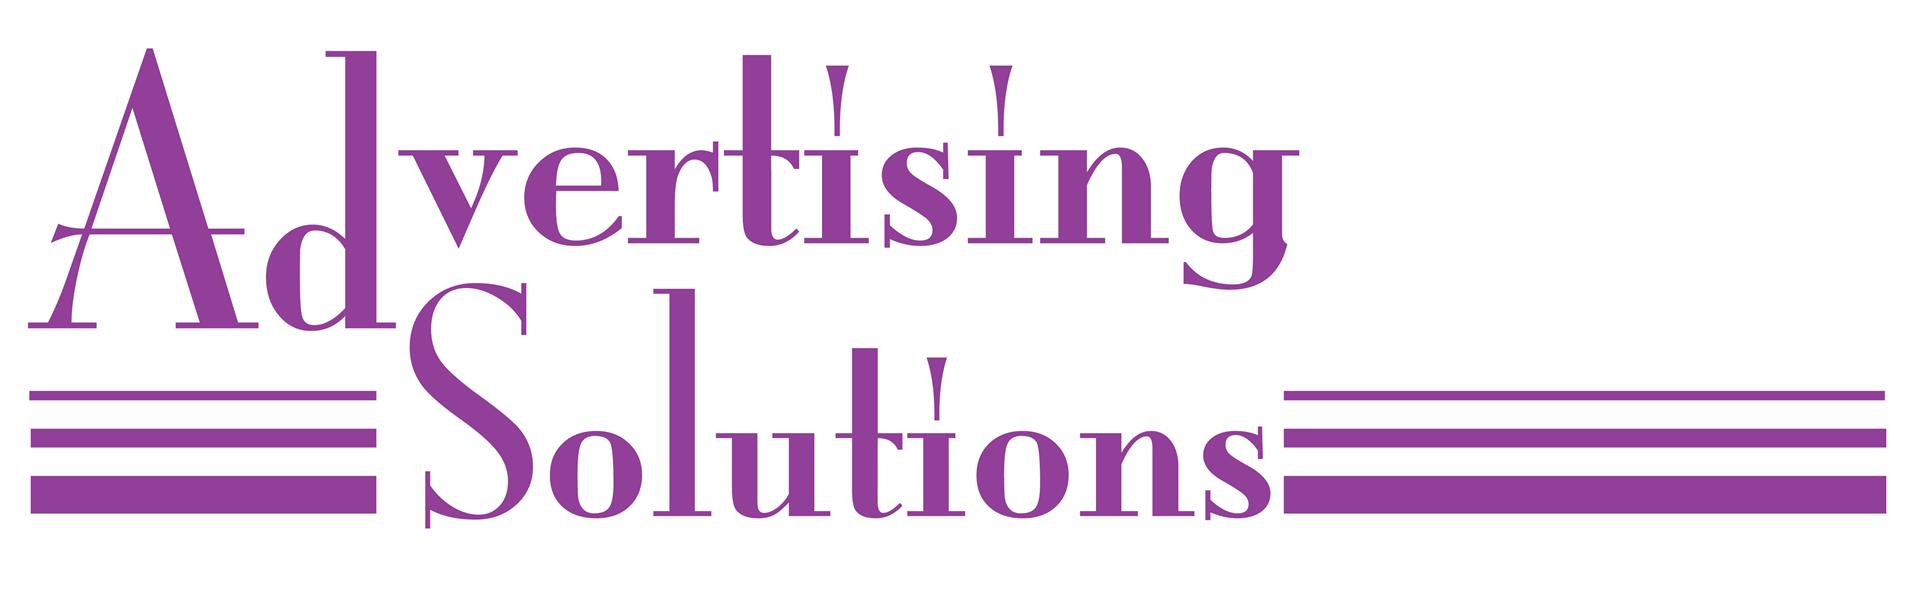 Advertising Solutions